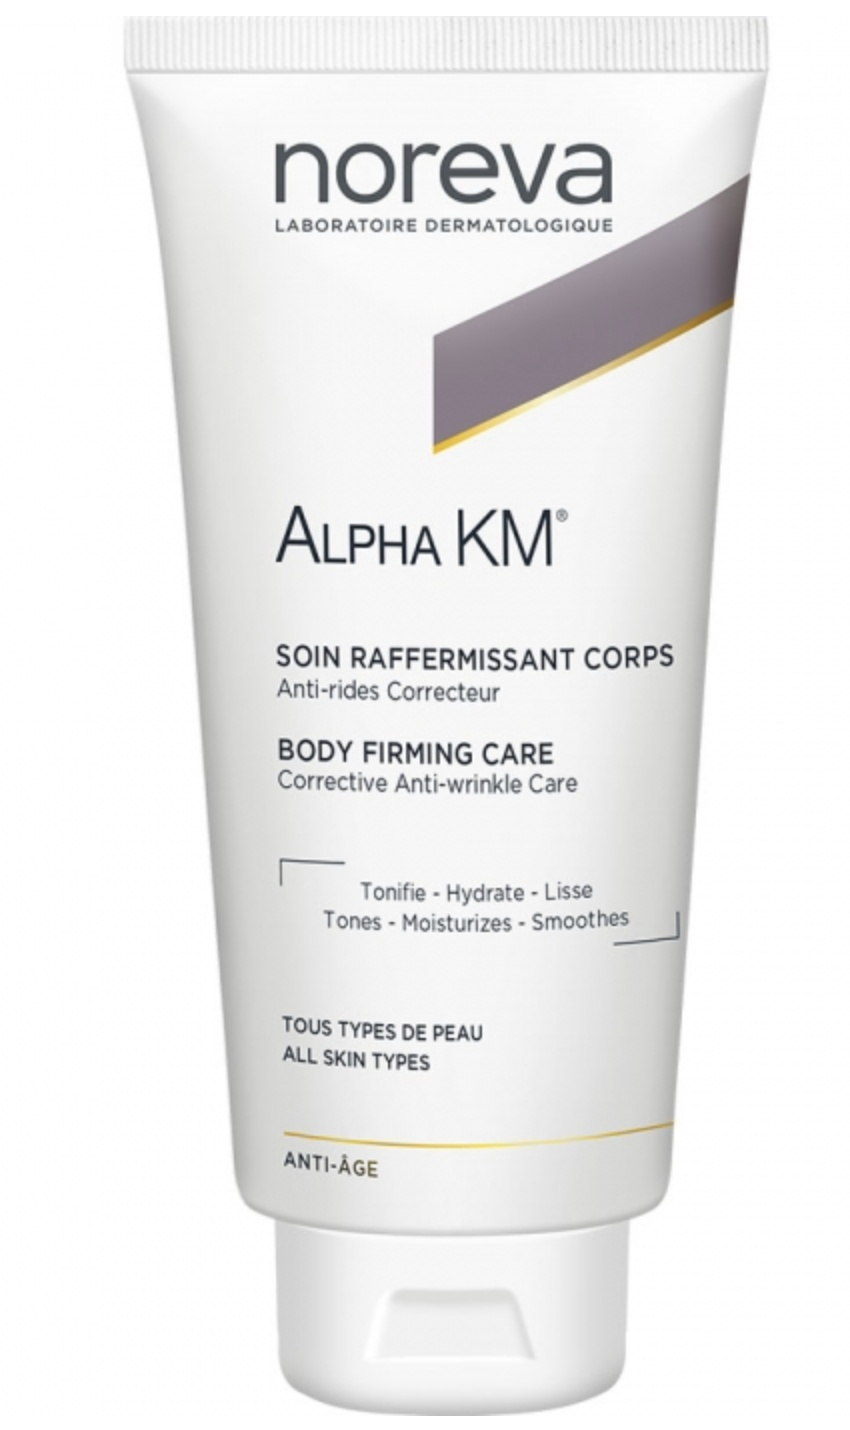 Noreva Alpha Km Body Firming Care